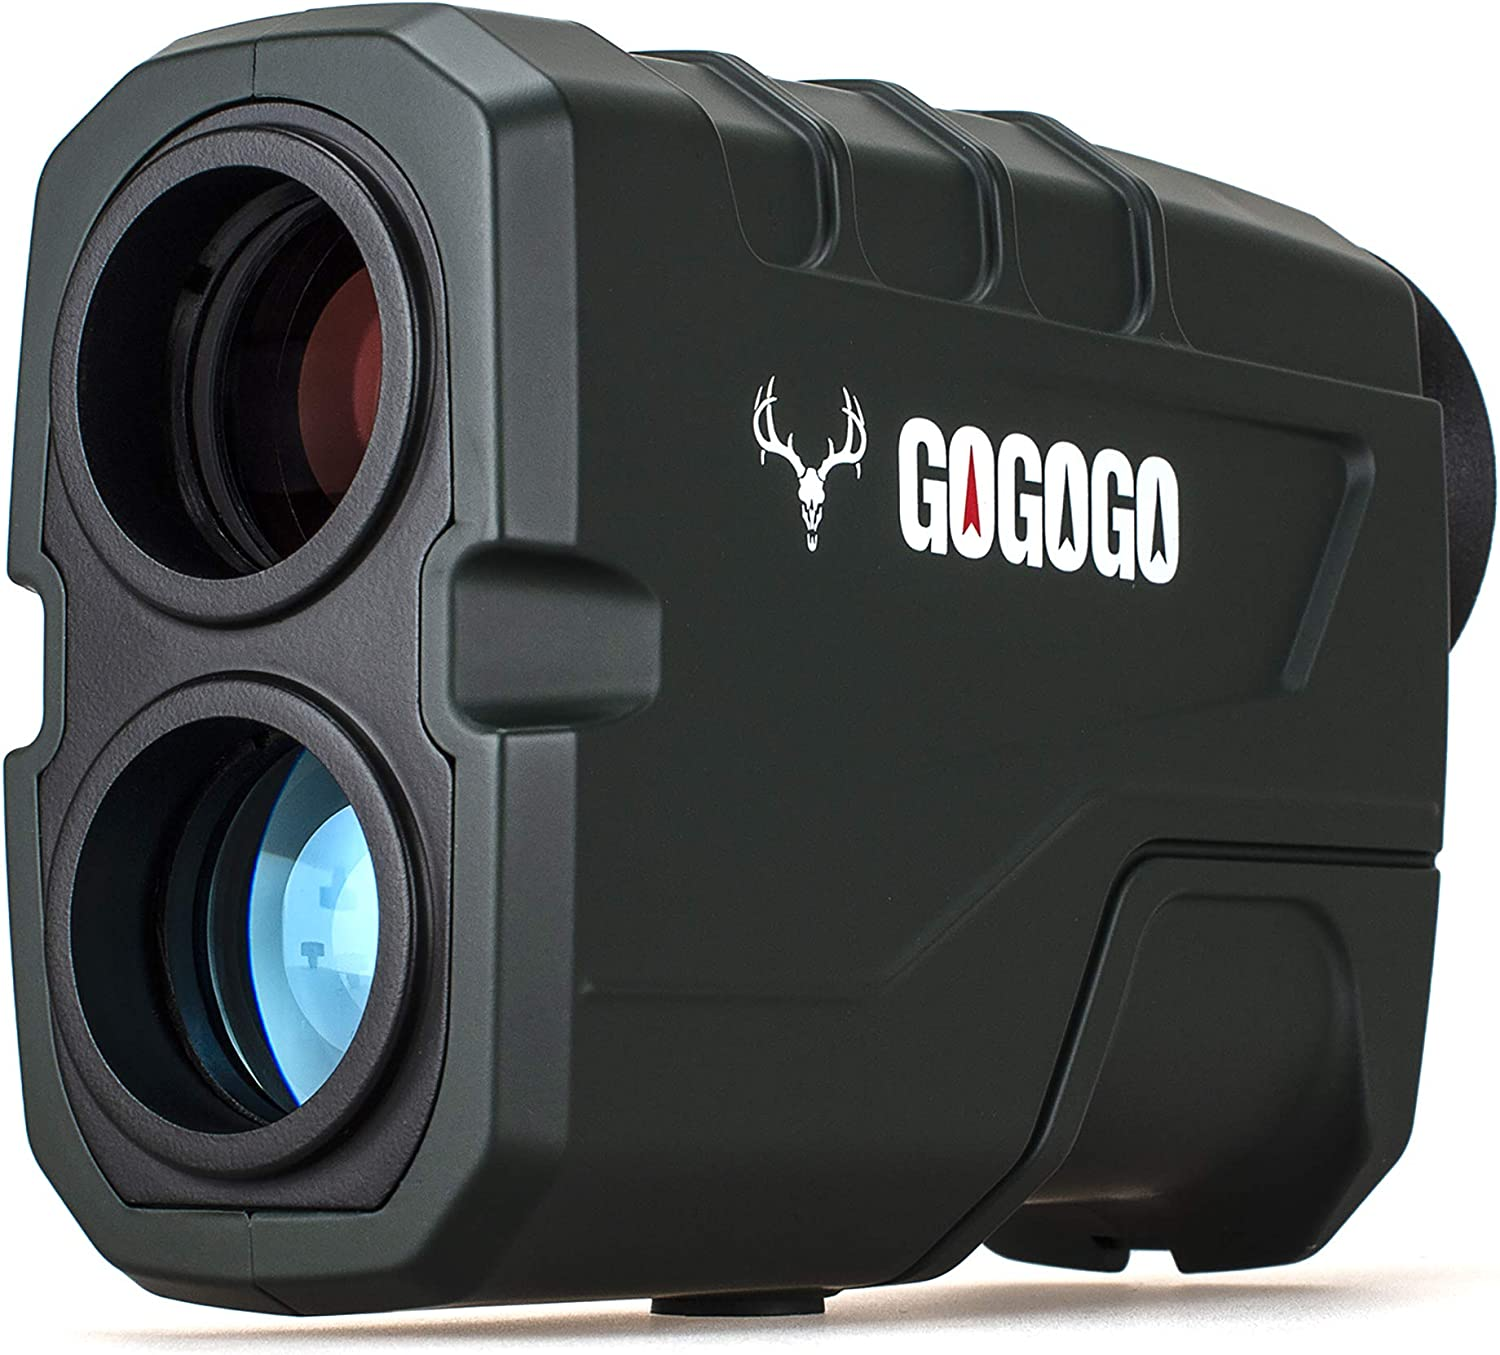 Gogogo Sport 1200 Yards Laser Range Finder, Hunting with Flagpole Lock - Ranging - Speed and Scan 6X Rangefinders with USB Cable : Sports & Outdoors